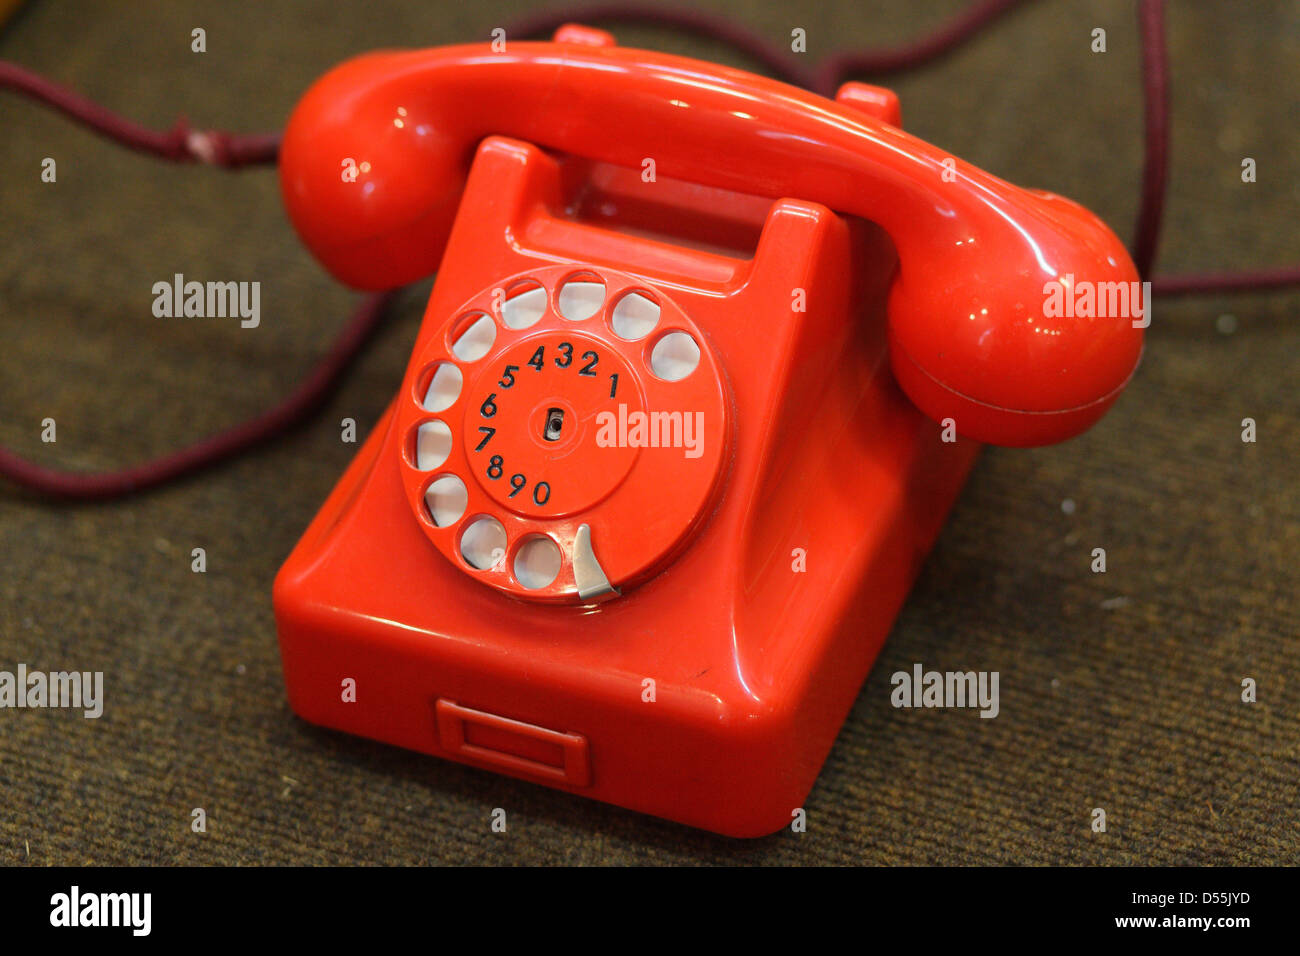 Warsaw, Poland, red rotary phone at the Technical Museum - Stock Image